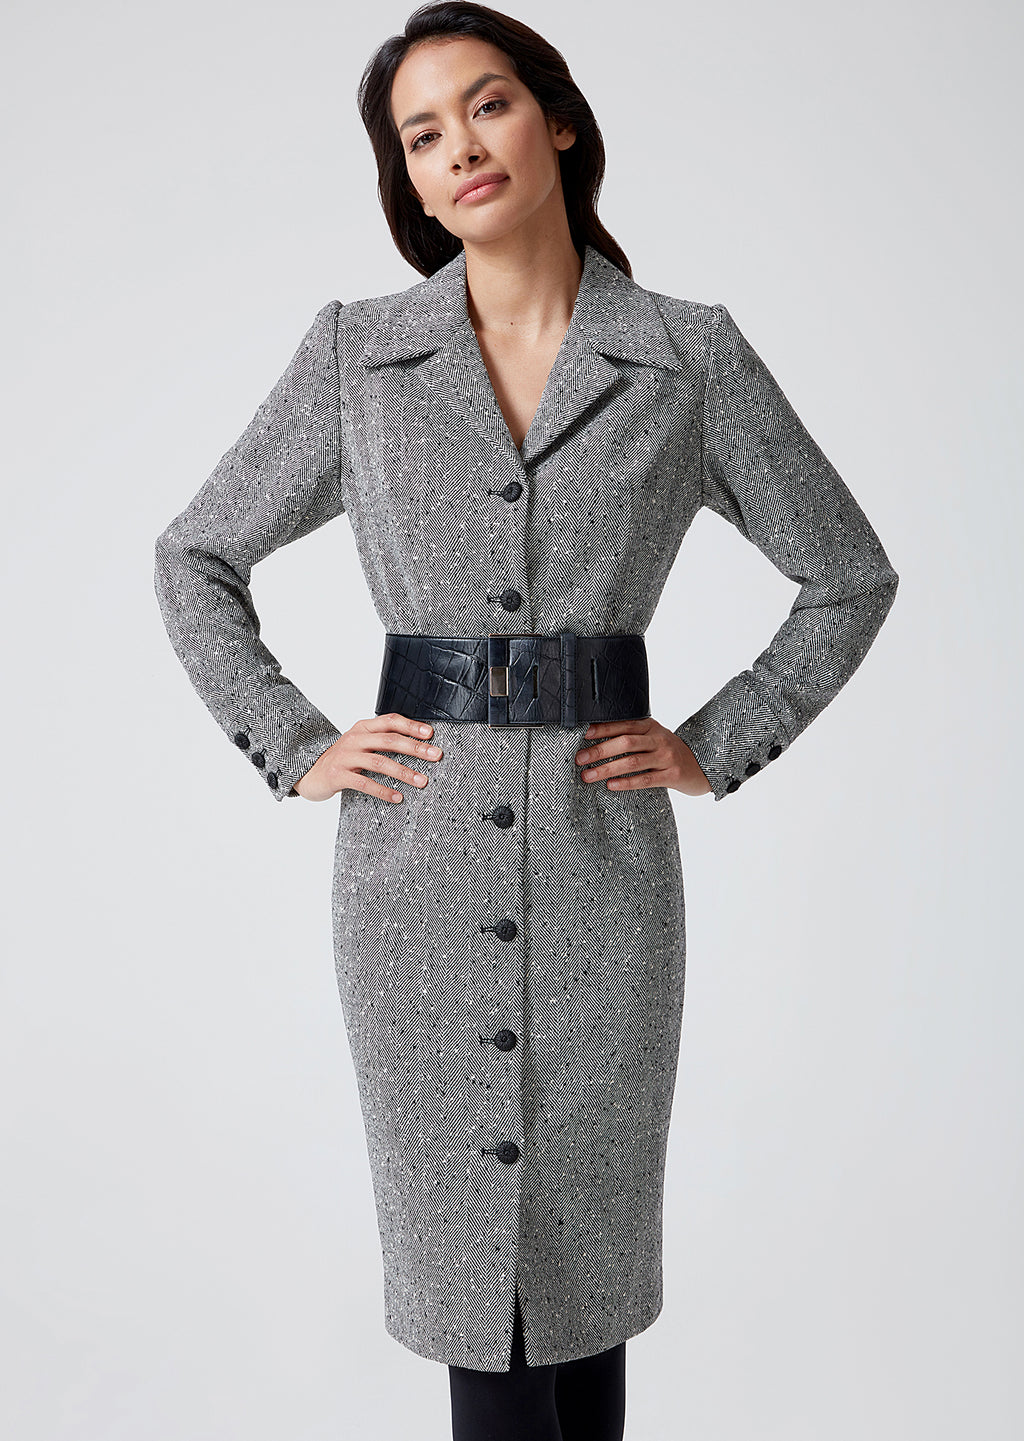 Black and White Herringbone Coat Dress - Rosie